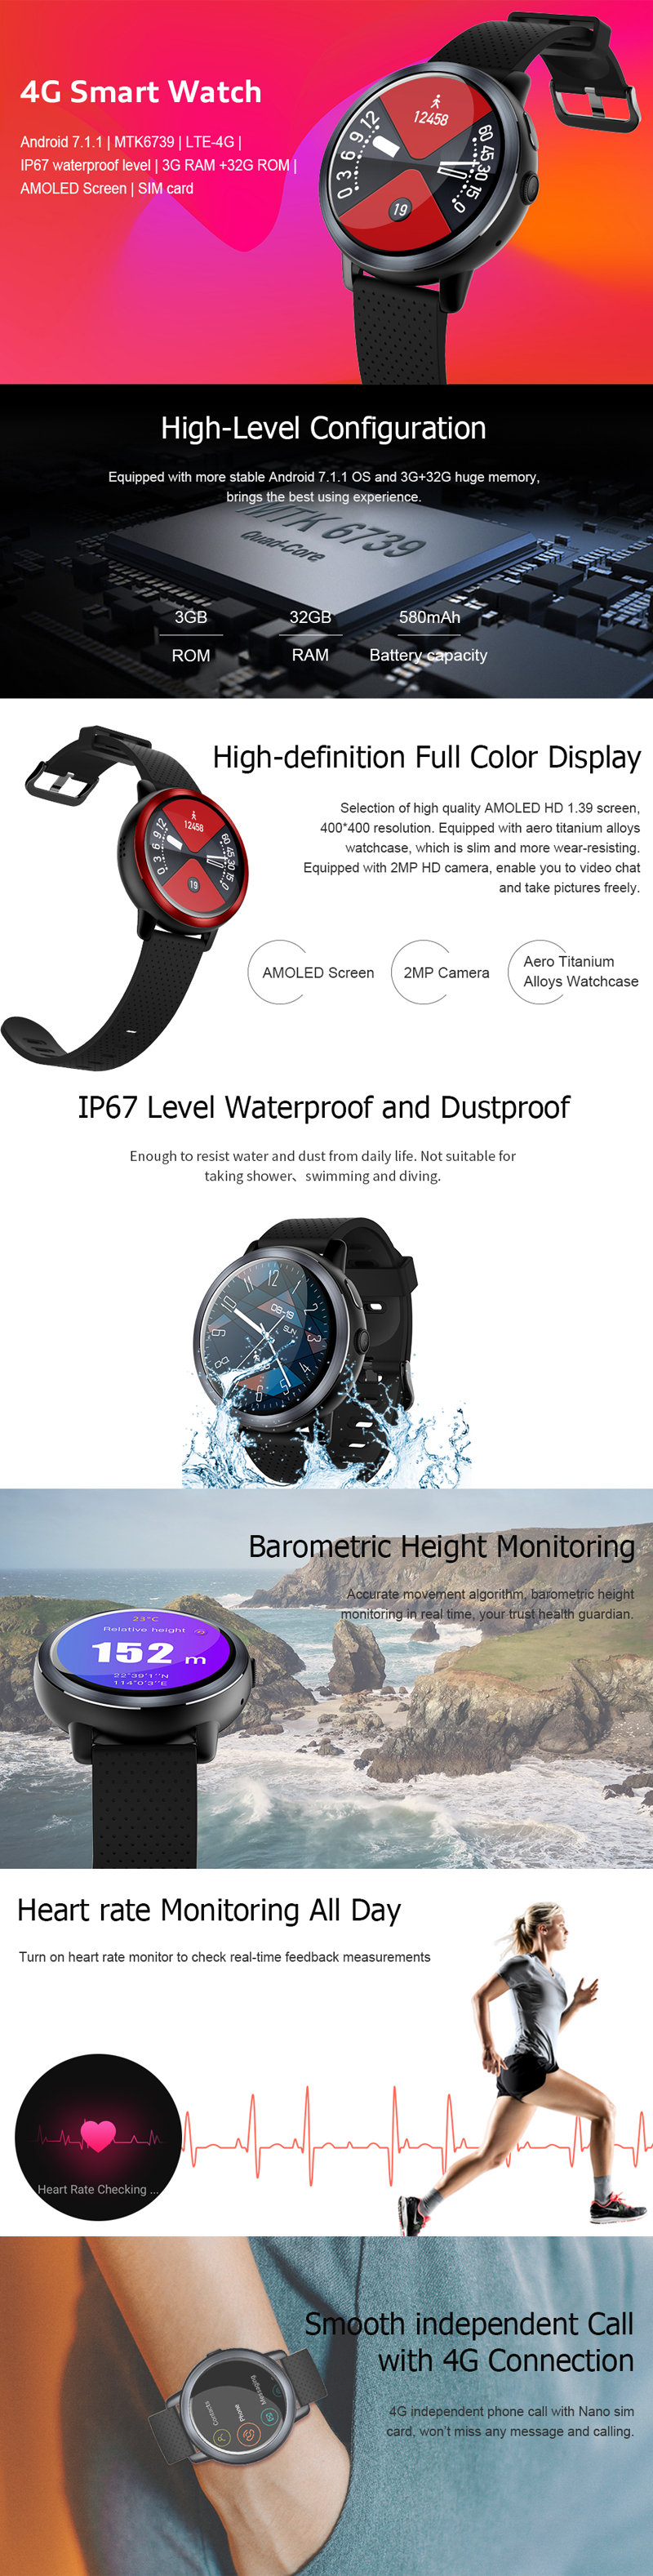 JSBP Z29 4G 3 + 32G GPS WI-FI 2MP HD камера Watch Phone 1.39 '' Full Screen Водонепроницаемы Фитнес Smart Watch - фото 1